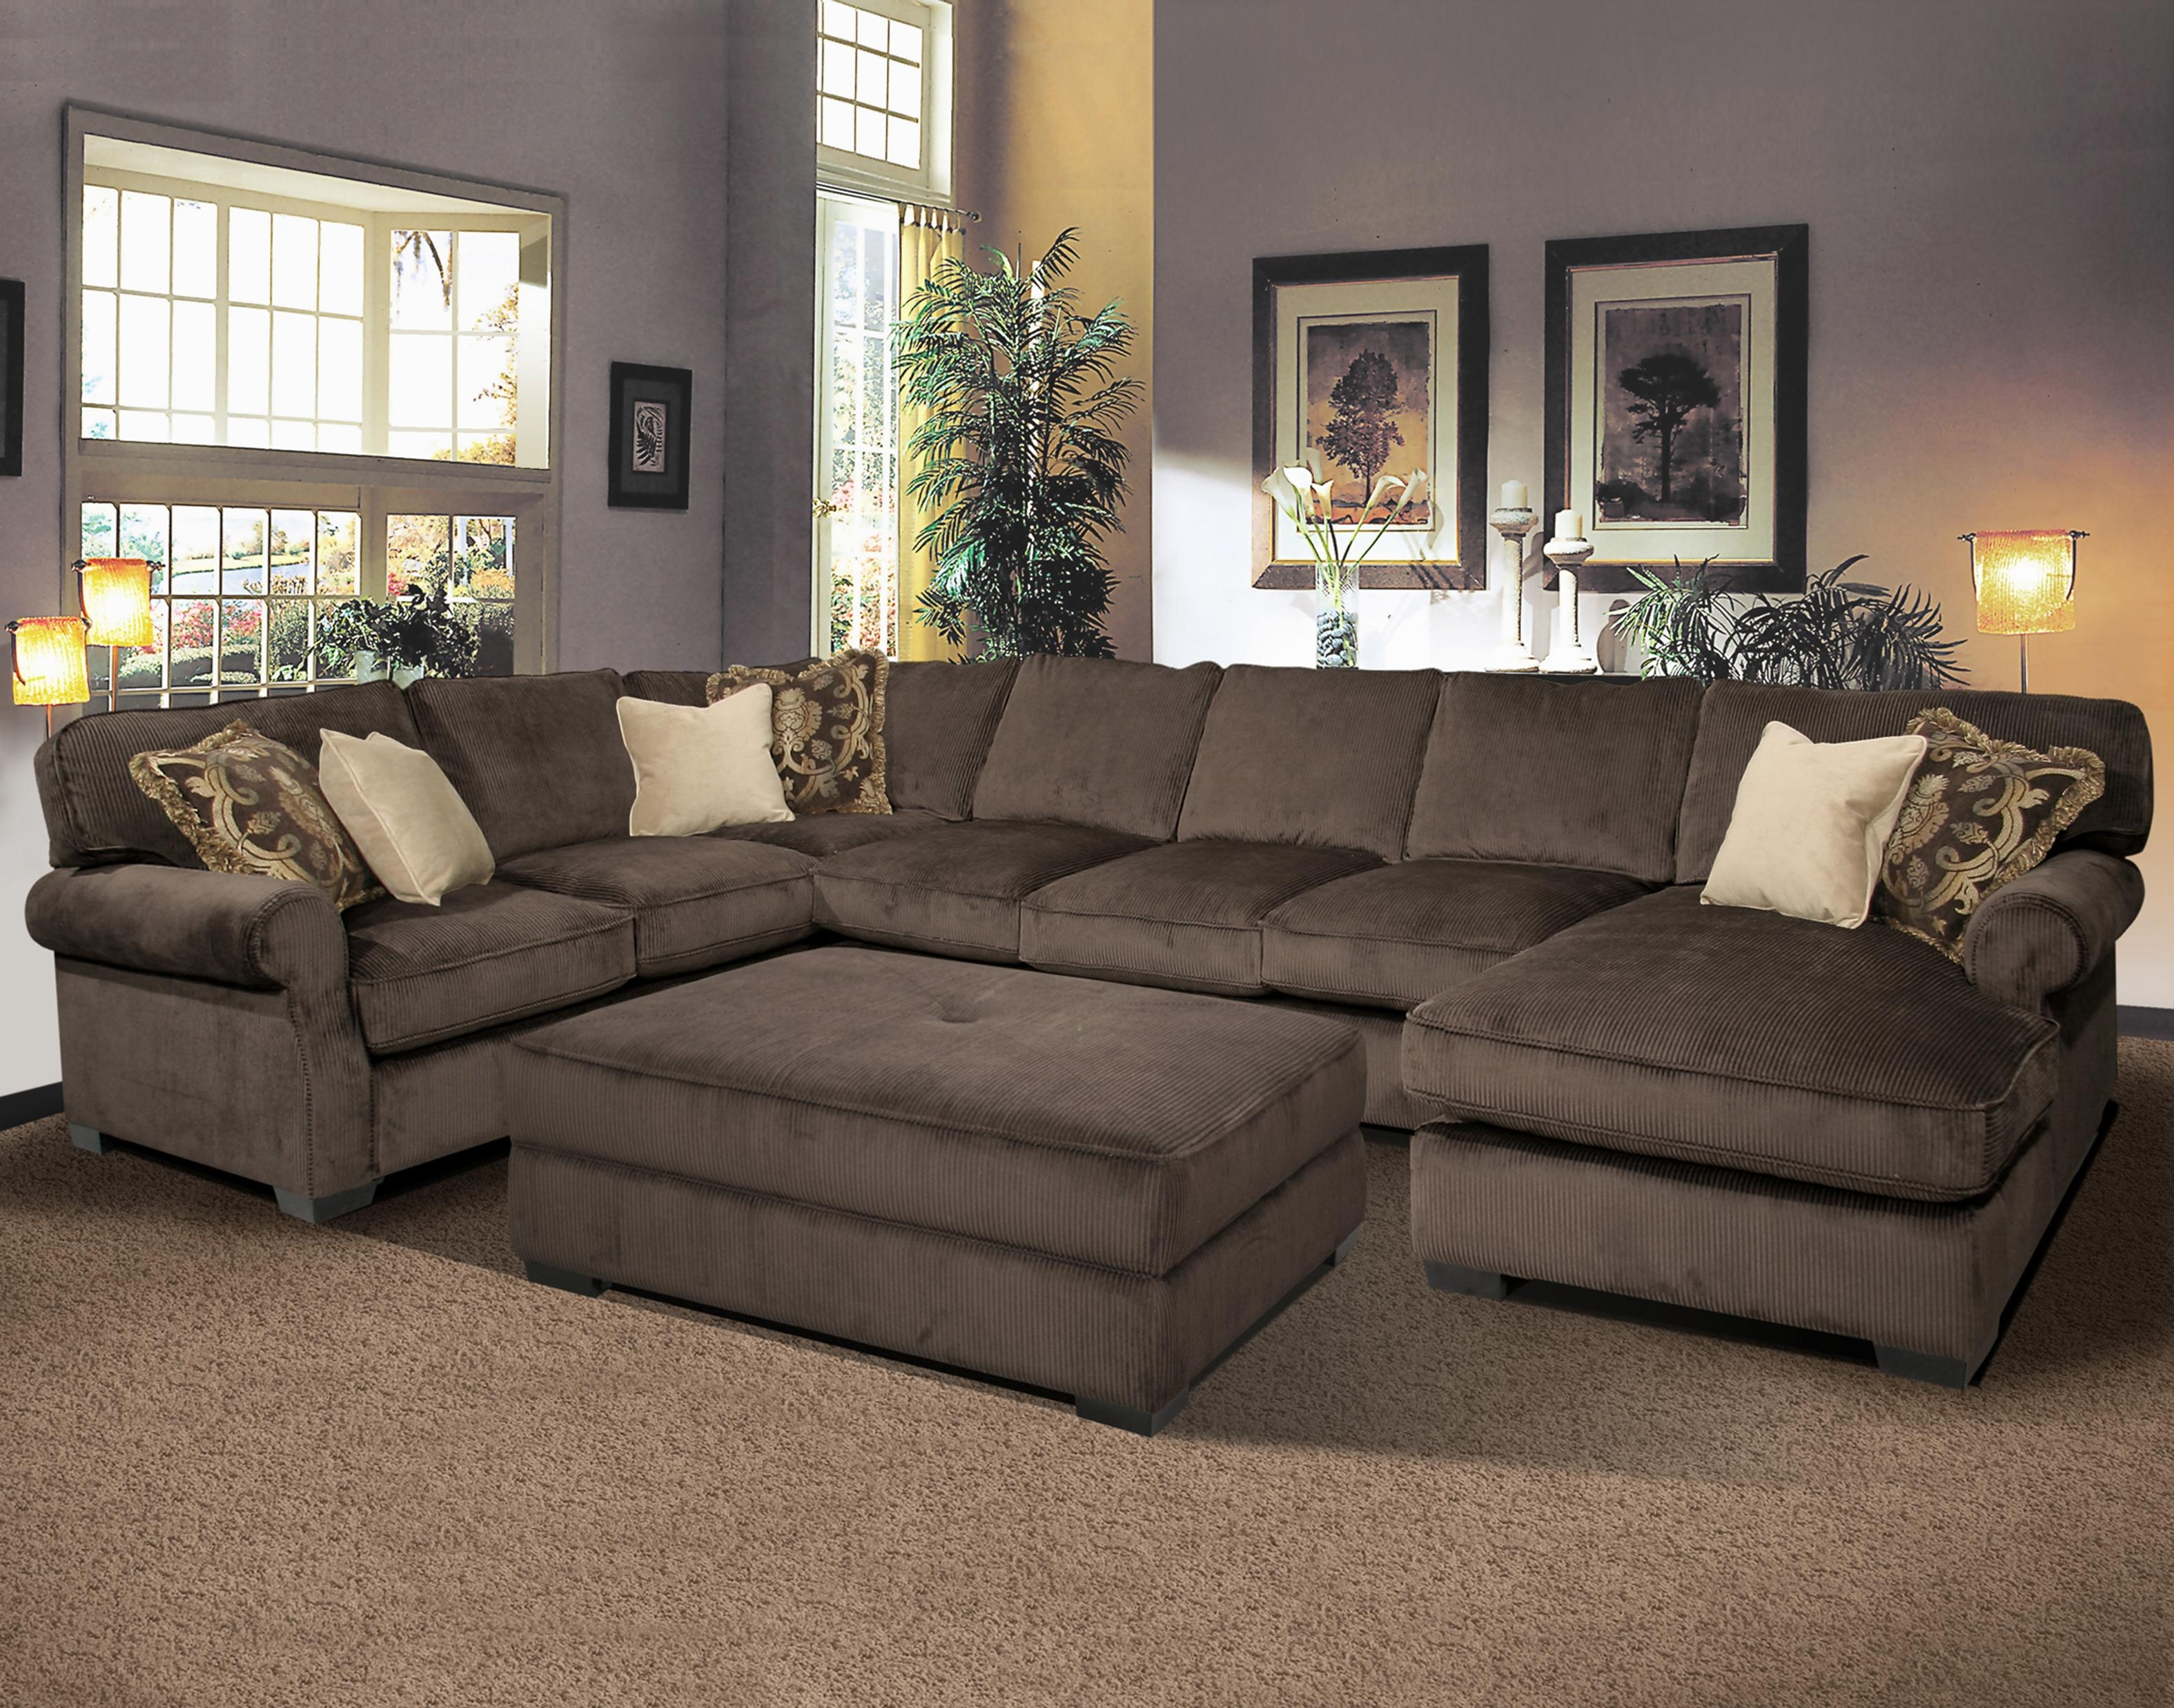 Sleeper Sofa Rochester Ny – Fjellkjeden Intended For Rochester Ny Sectional Sofas (View 10 of 10)